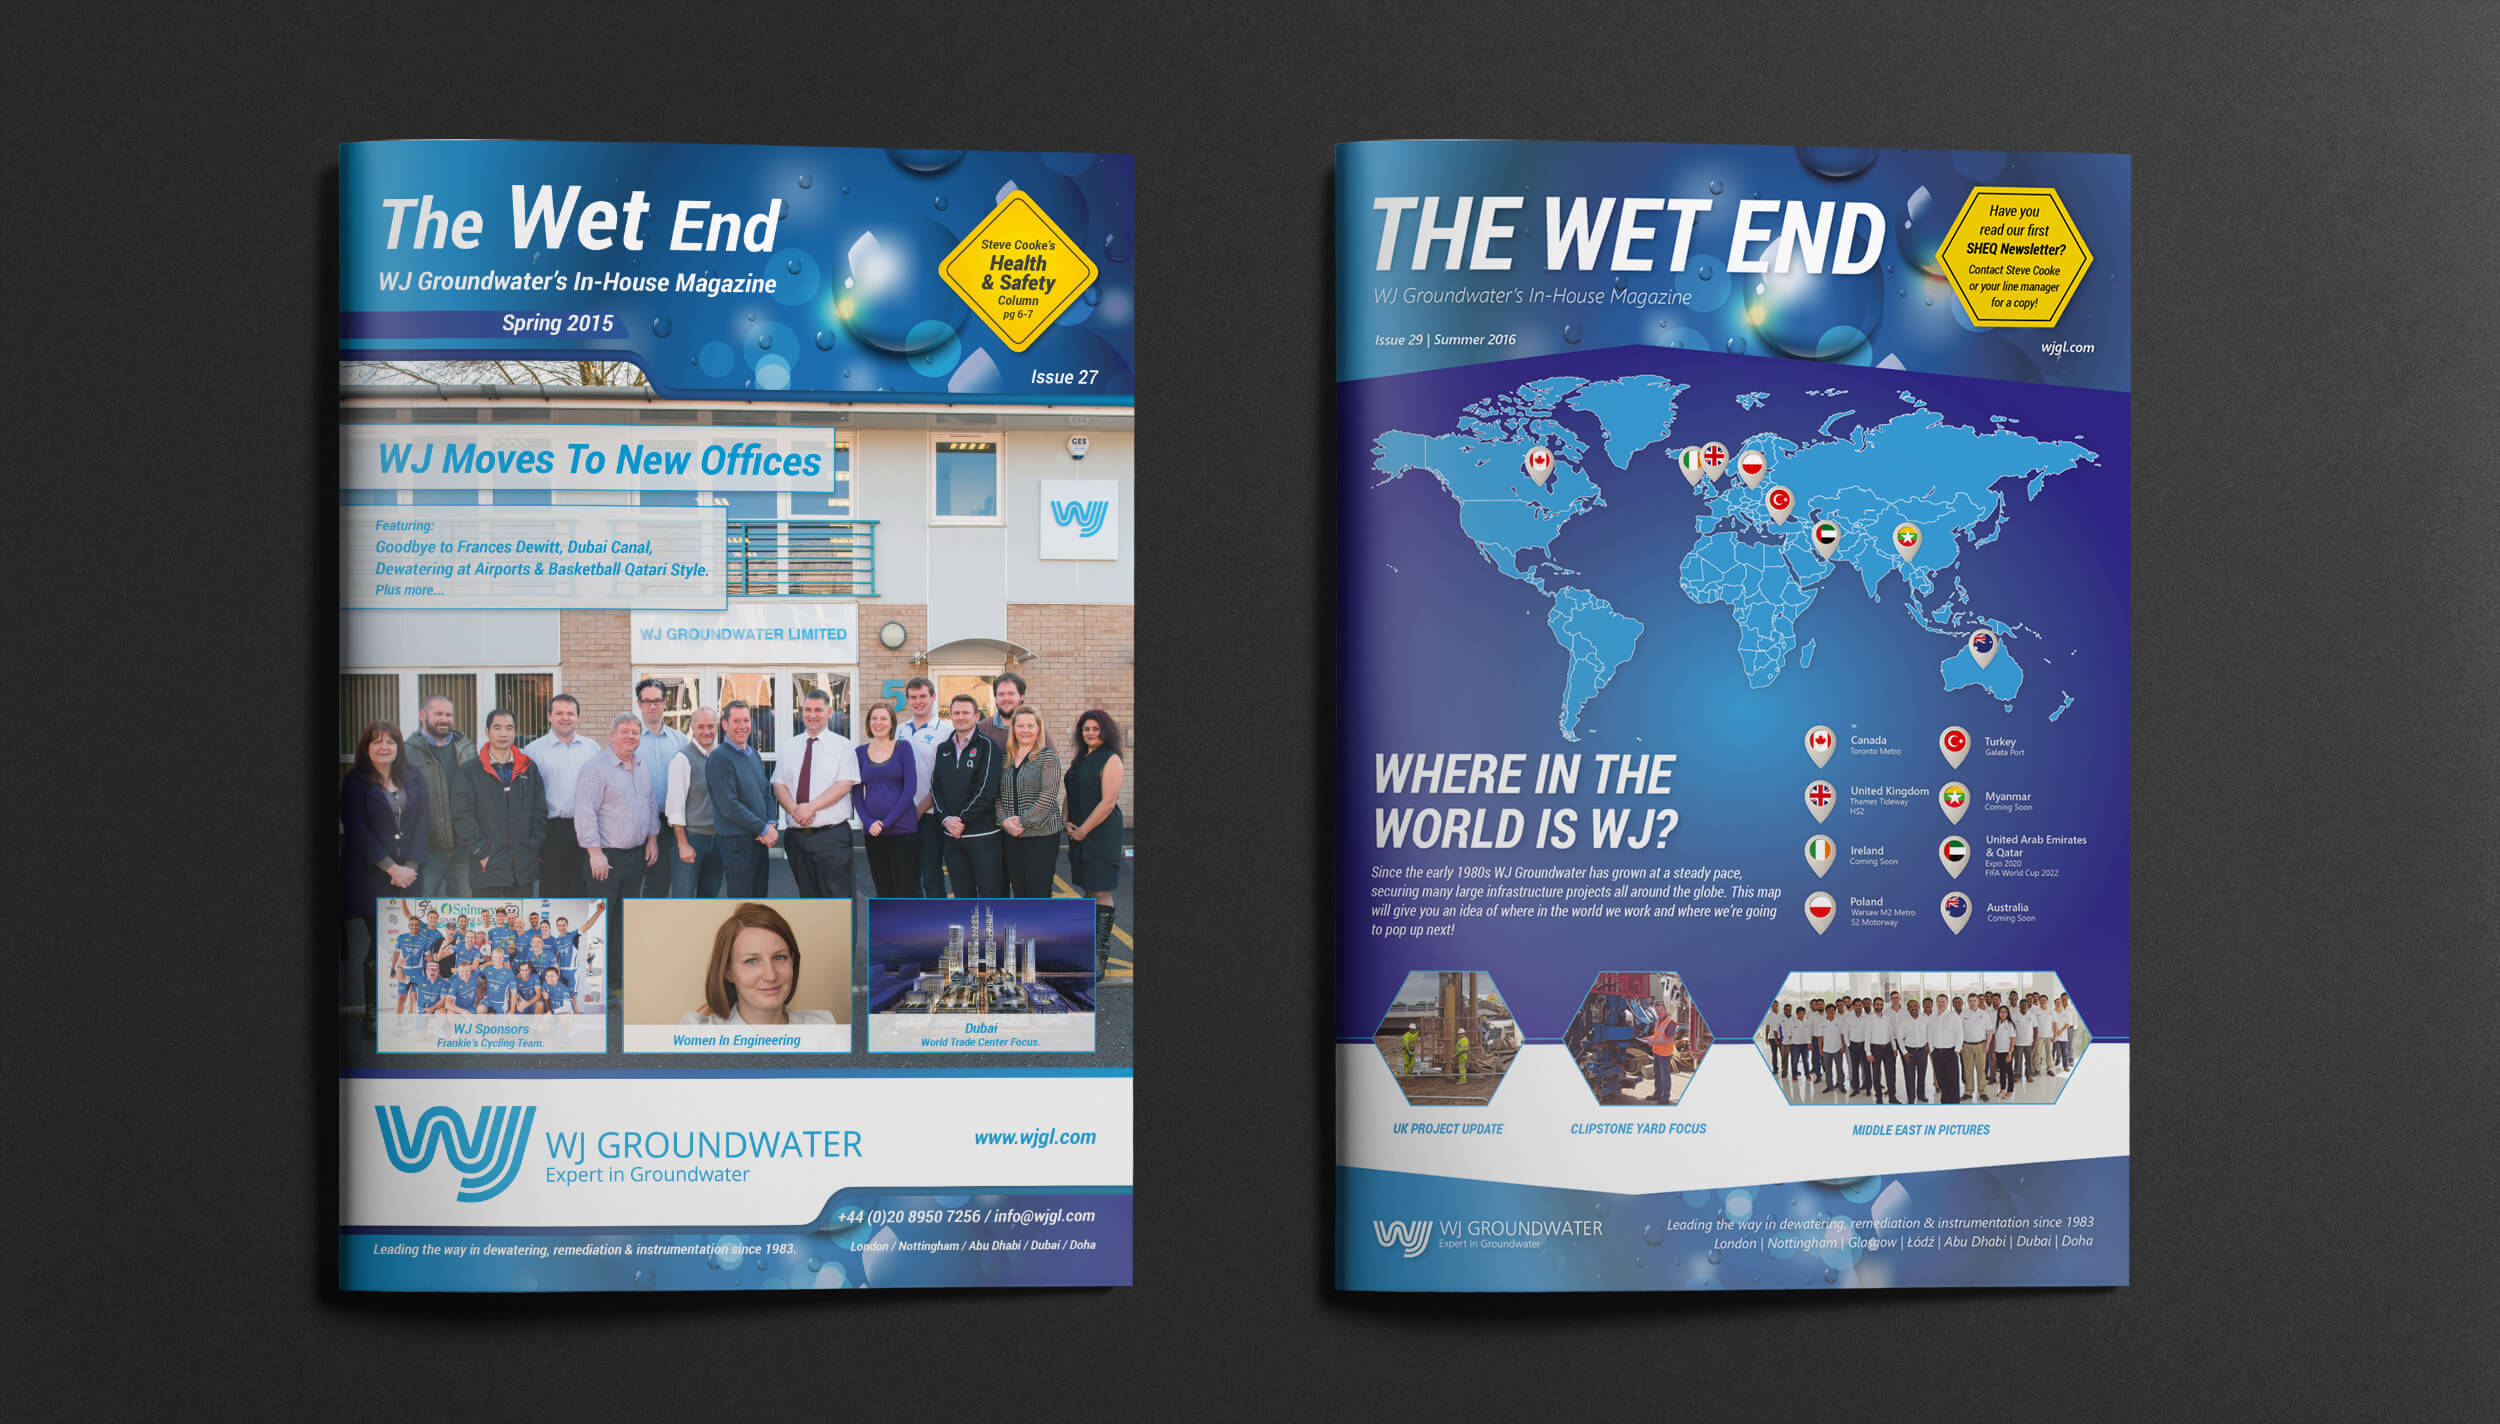 (Left) Issue 27 (Right) Issue 29 with updated branded design.